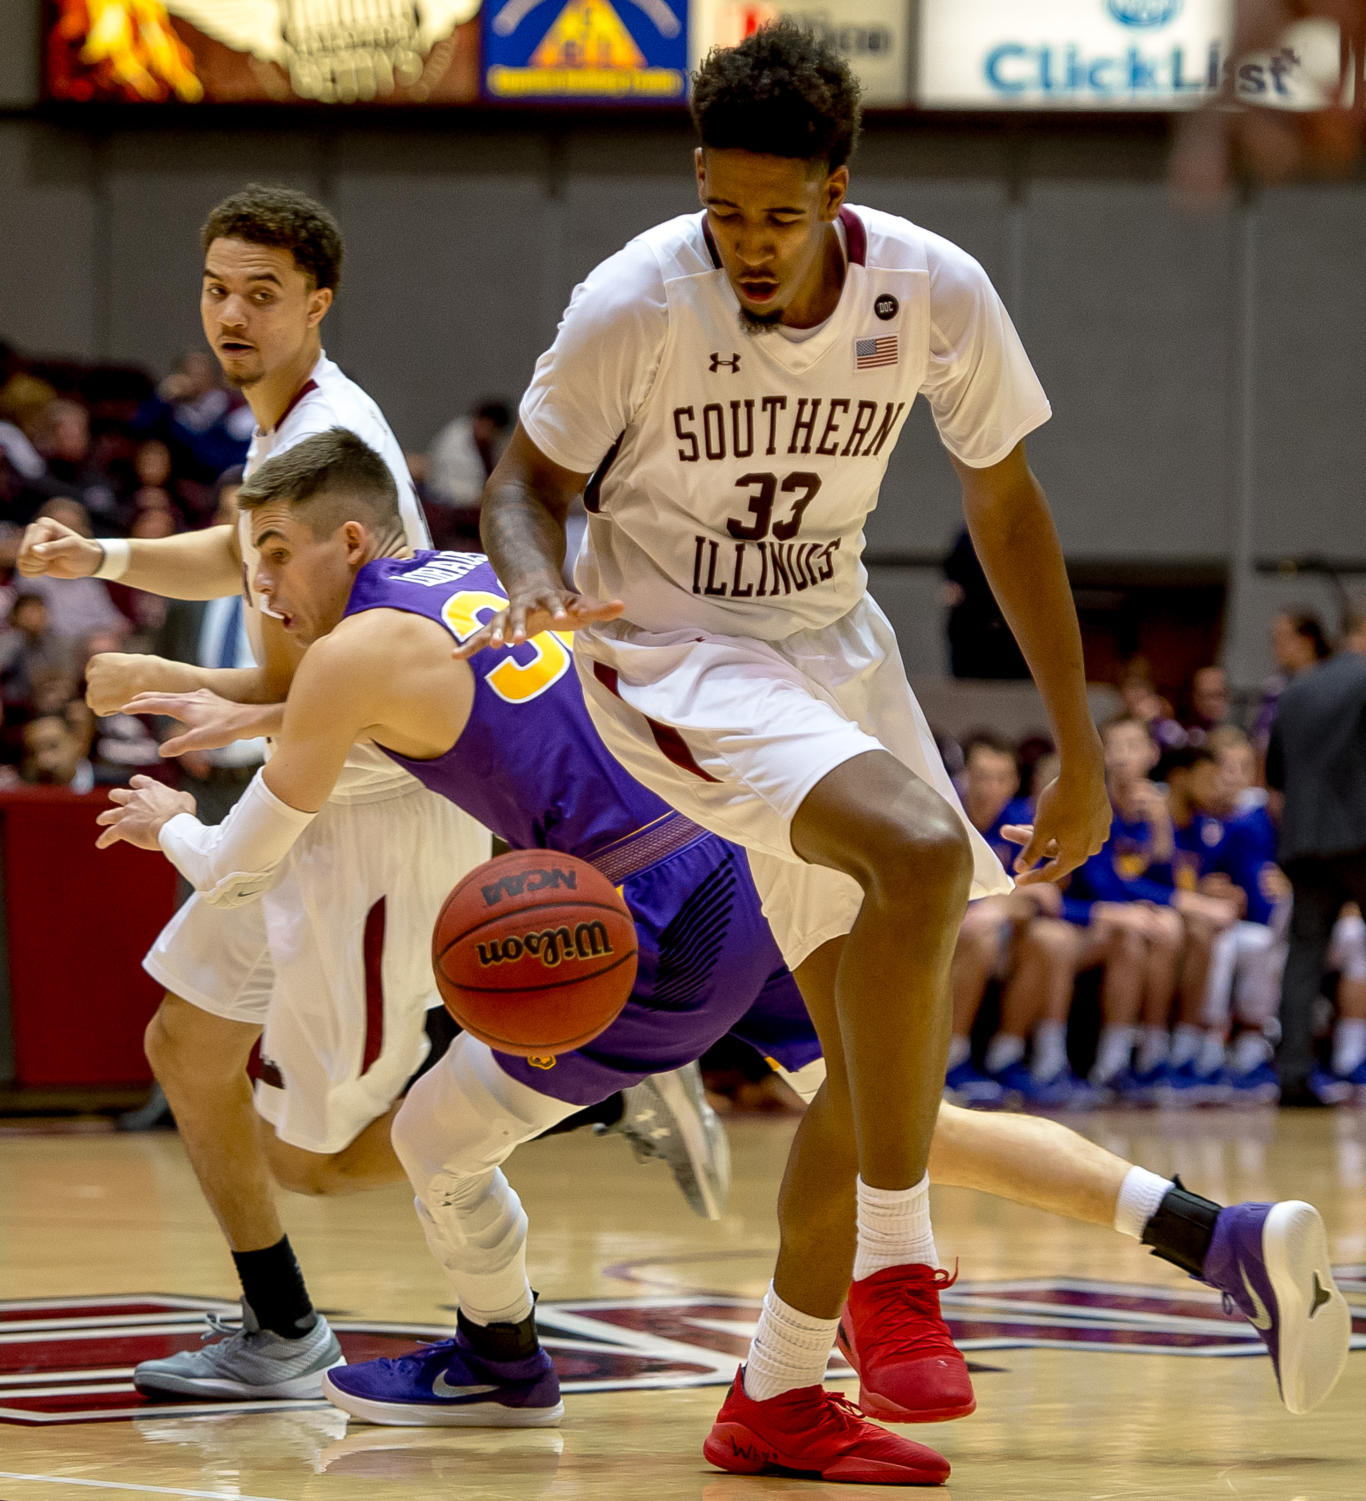 Junior+center+Kavion+Pippen+dribbles+the+ball+behind+his+legs+Sunday%2C+Jan.+21%2C+2018%2C+during+the+Salukis%27+64-53+victory+over+the+University+of+Northern+Iowa+Panthers+at+SIU+Arena.+%28Brian+Munoz+%7C+%40BrianMMunoz%29